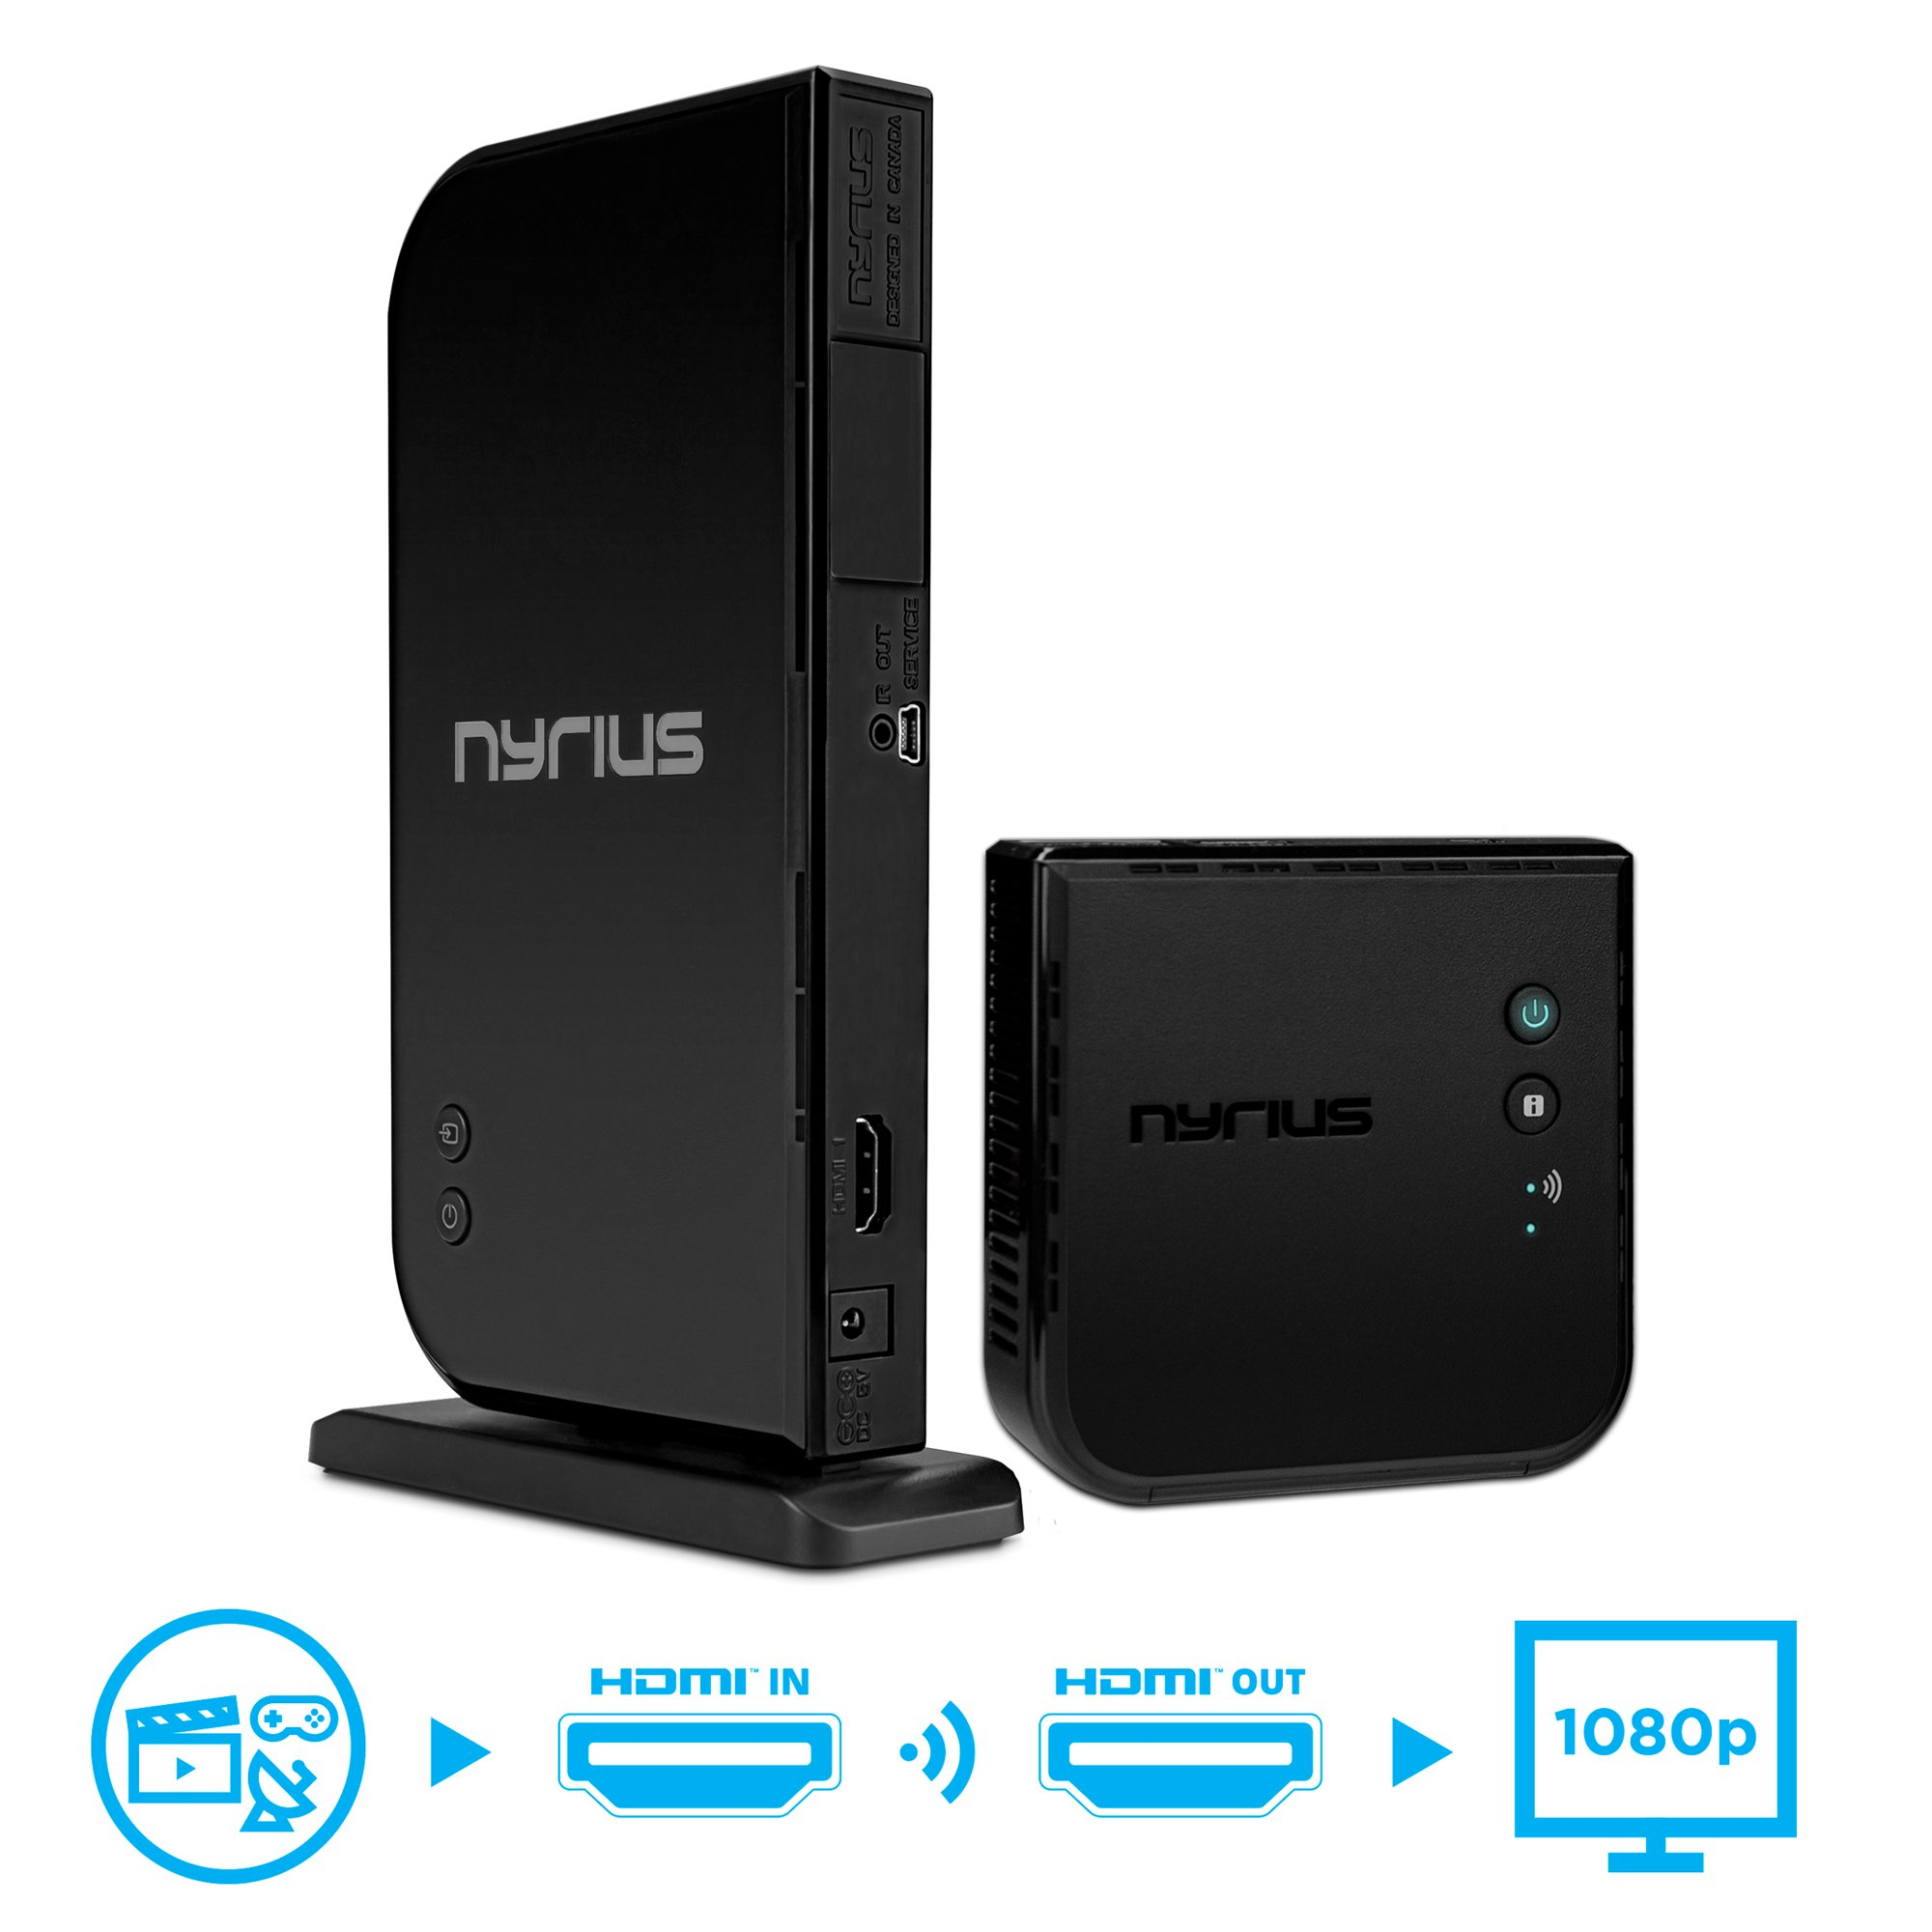 Nyrius ARIES Home HDMI Digital Wireless Transmitter & Receiver for HD 1080p  Video Streaming, Cable box, Satellite, Bluray, DVD, PS3, PS4, Xbox 360,